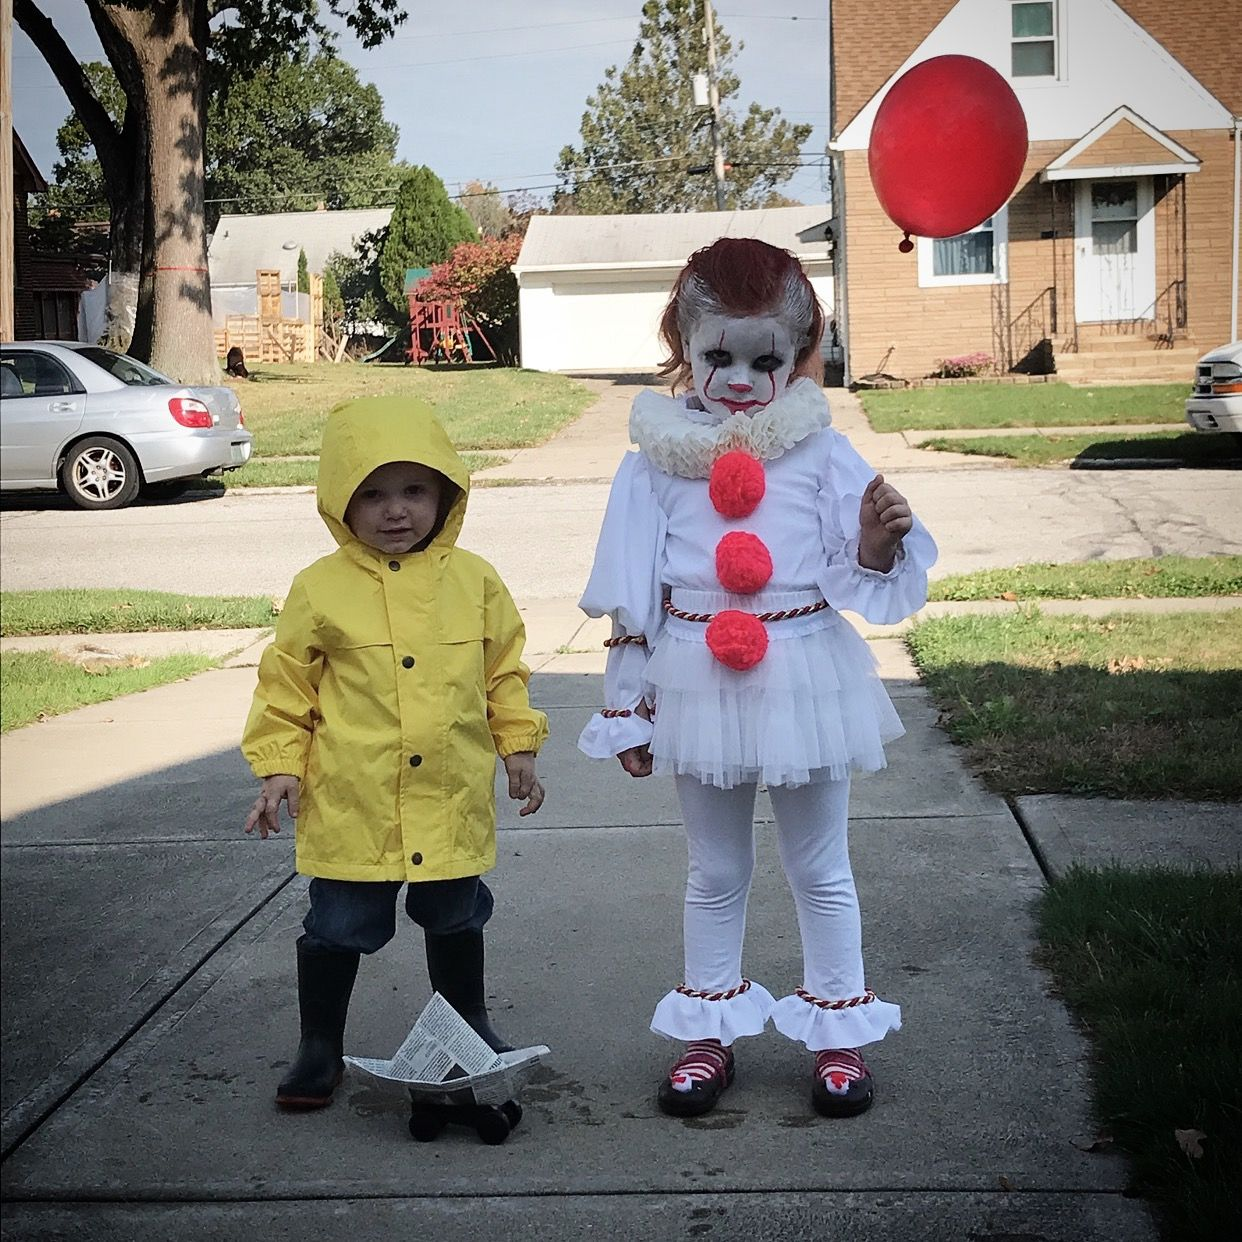 Children's IT Halloween costume. and Pennywise the